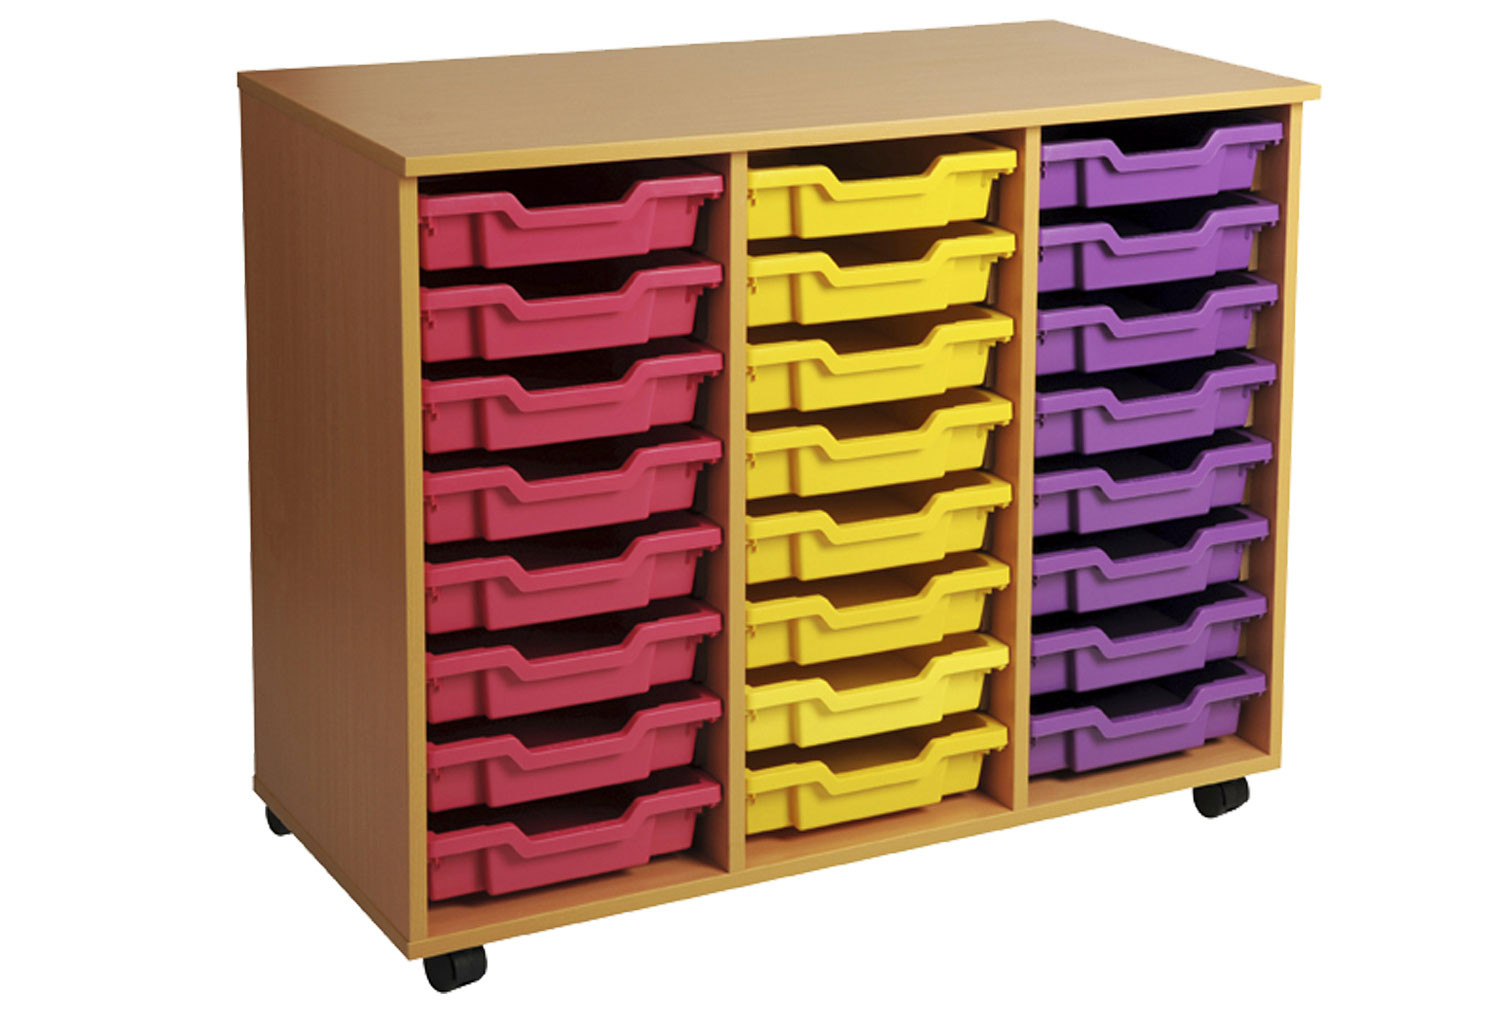 Primary Triple Column Mobile Tray Storage Unit With 24 Shallow Trays